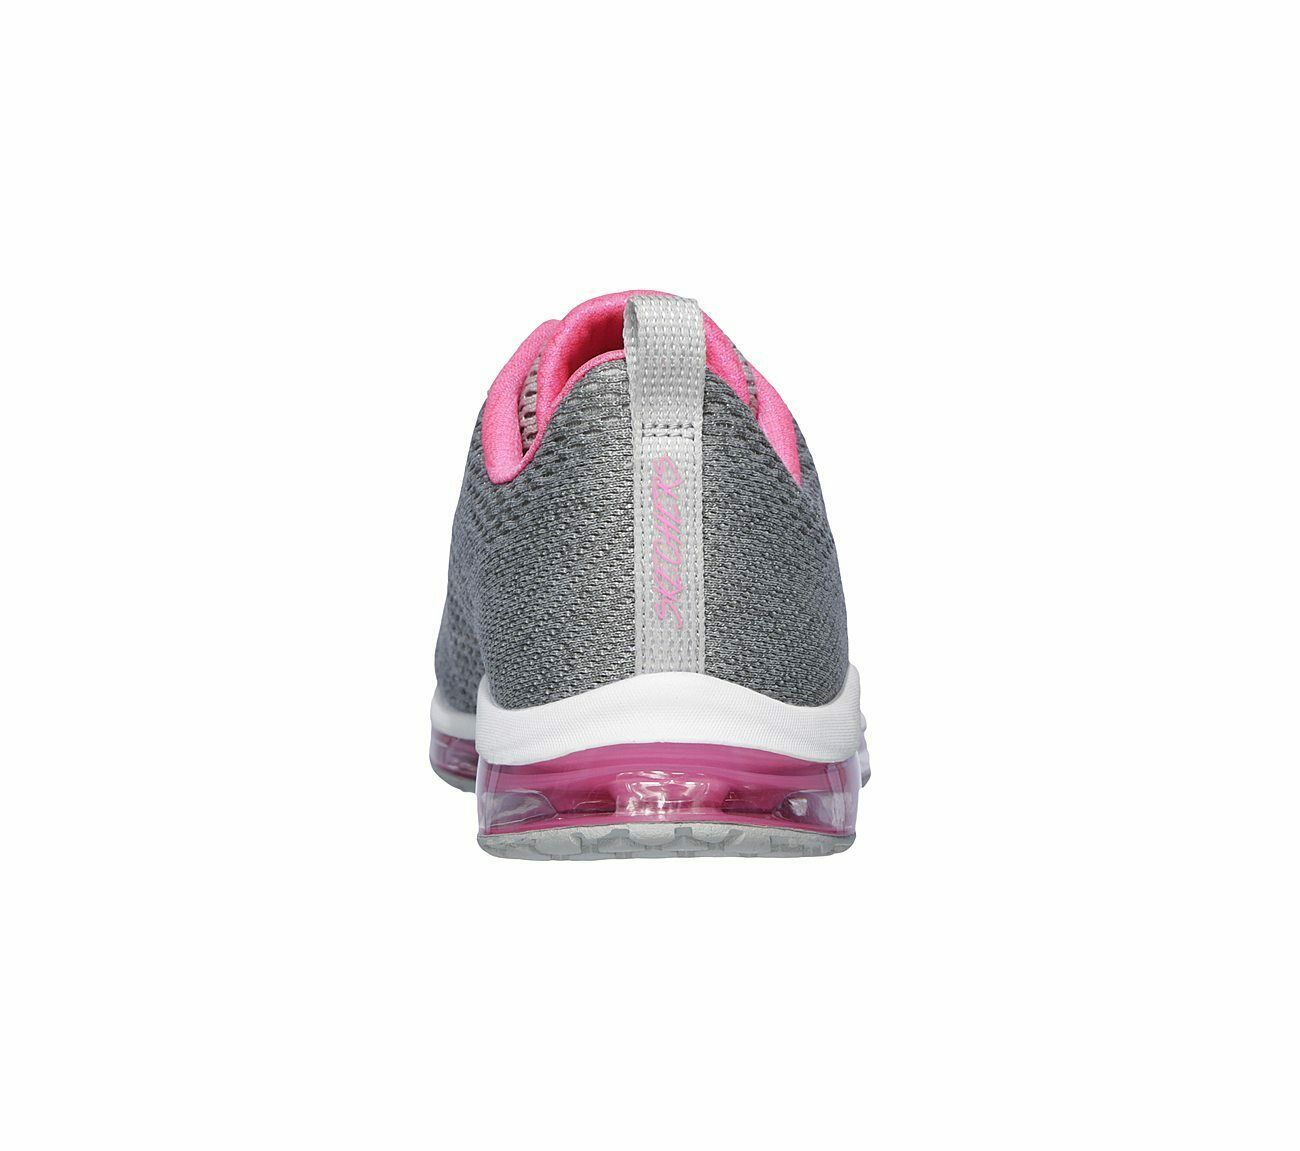 Skechers Shoes Women Gray Pink Memory Foam Sport Air Cushion Mesh Comfort 12644 image 6